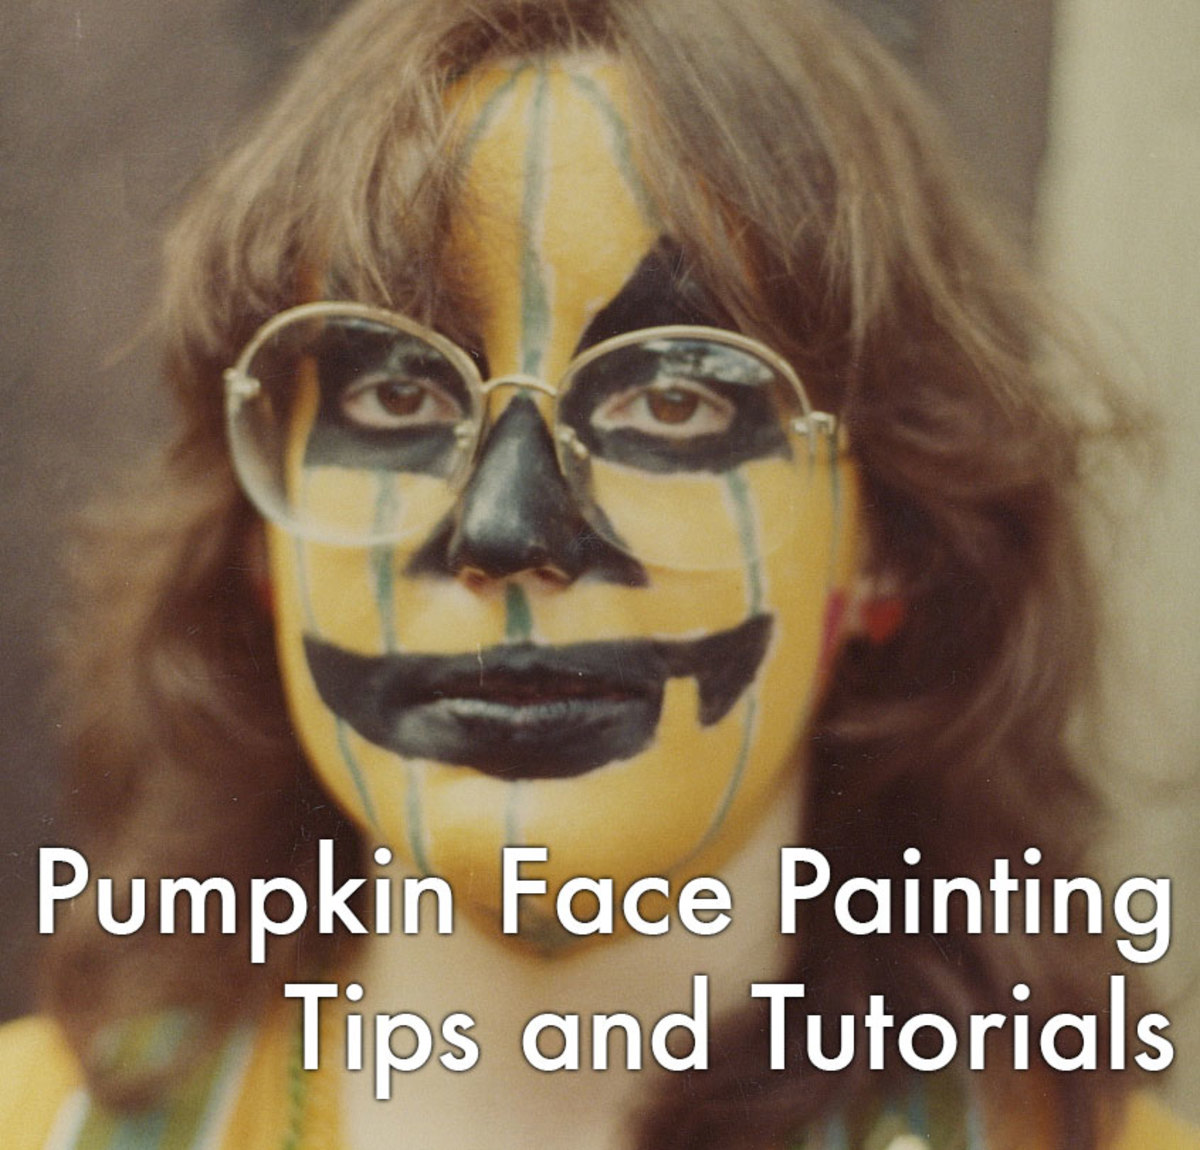 Pumpkin face painting tips and tutorials